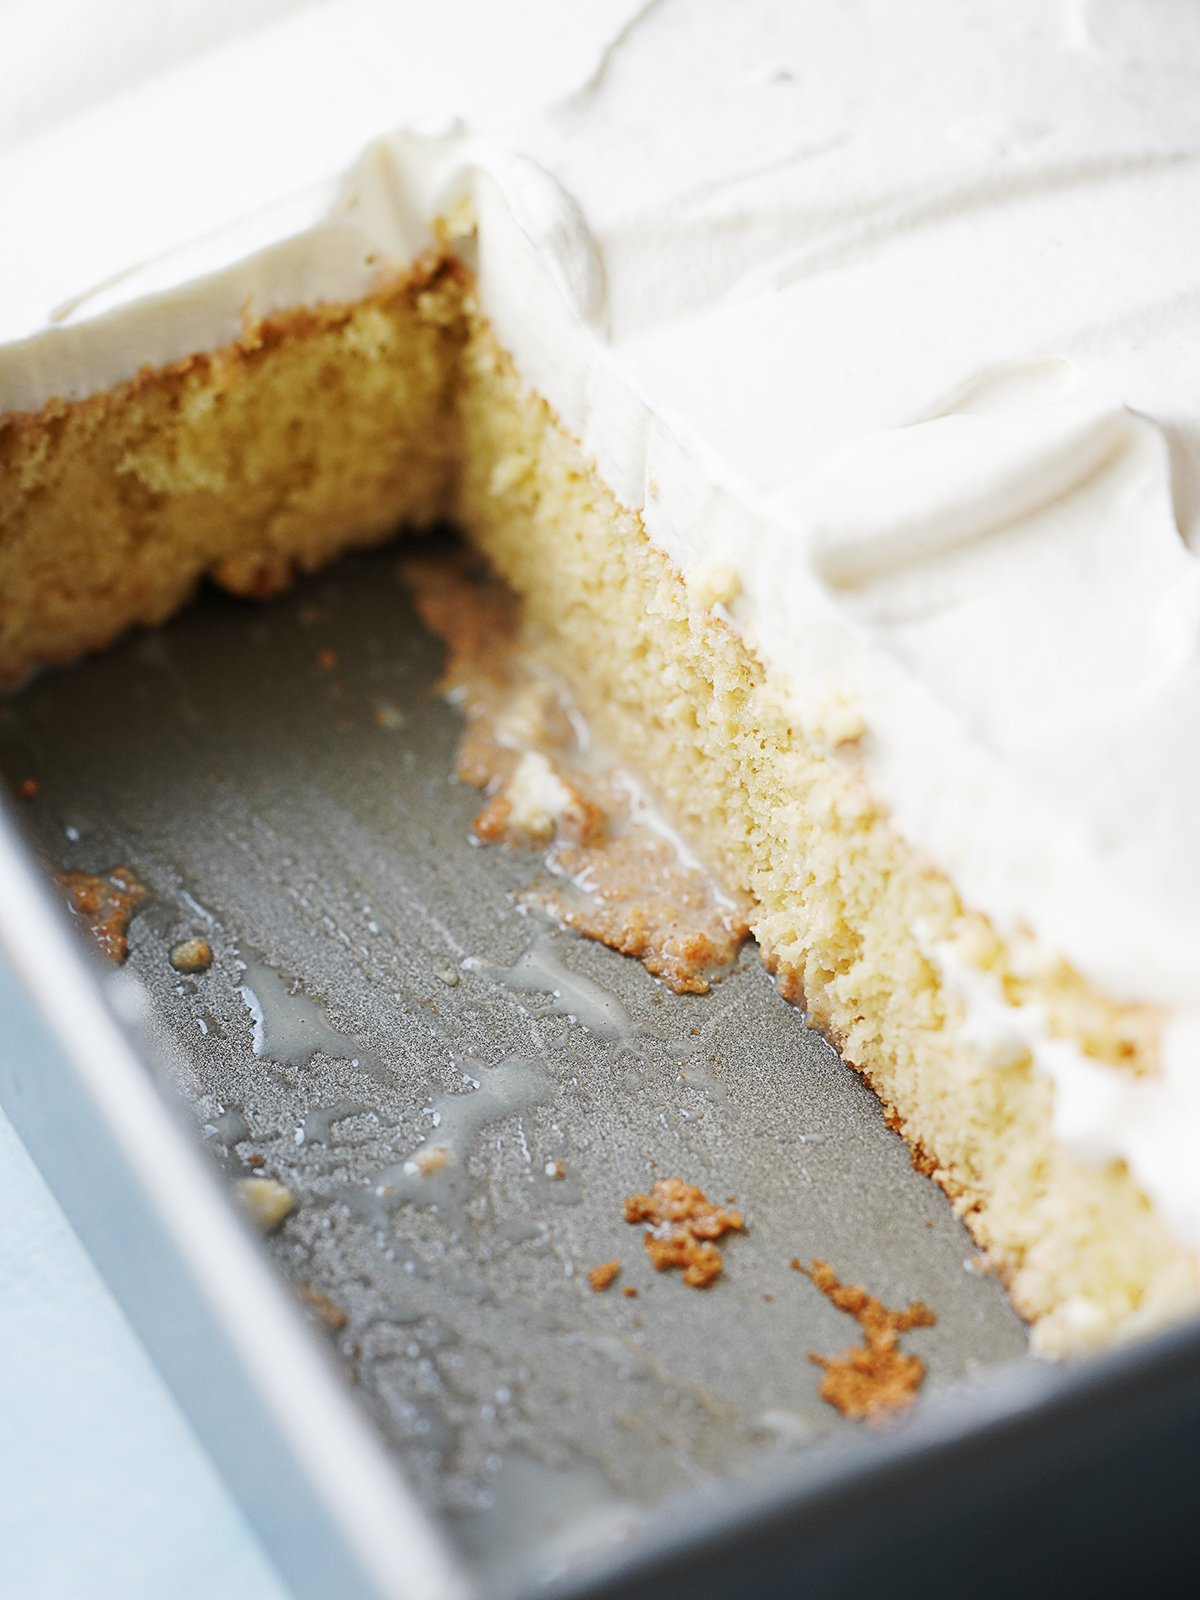 Cake in a rectangular baking pan with slices cut out.